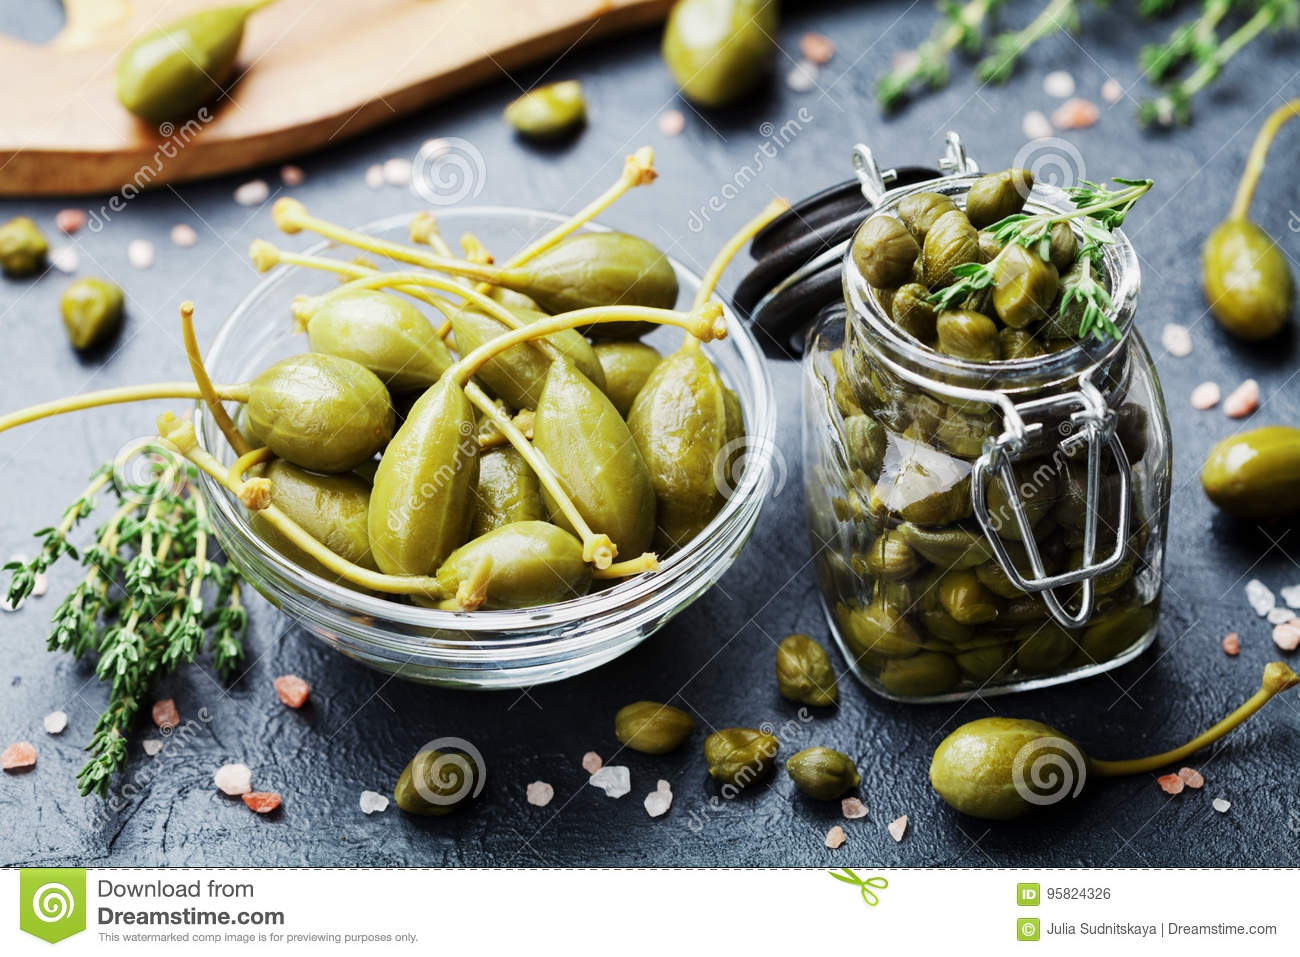 Mixed Capers In Jar And Bowl On Black Kitchen Table. Stock Photo ...